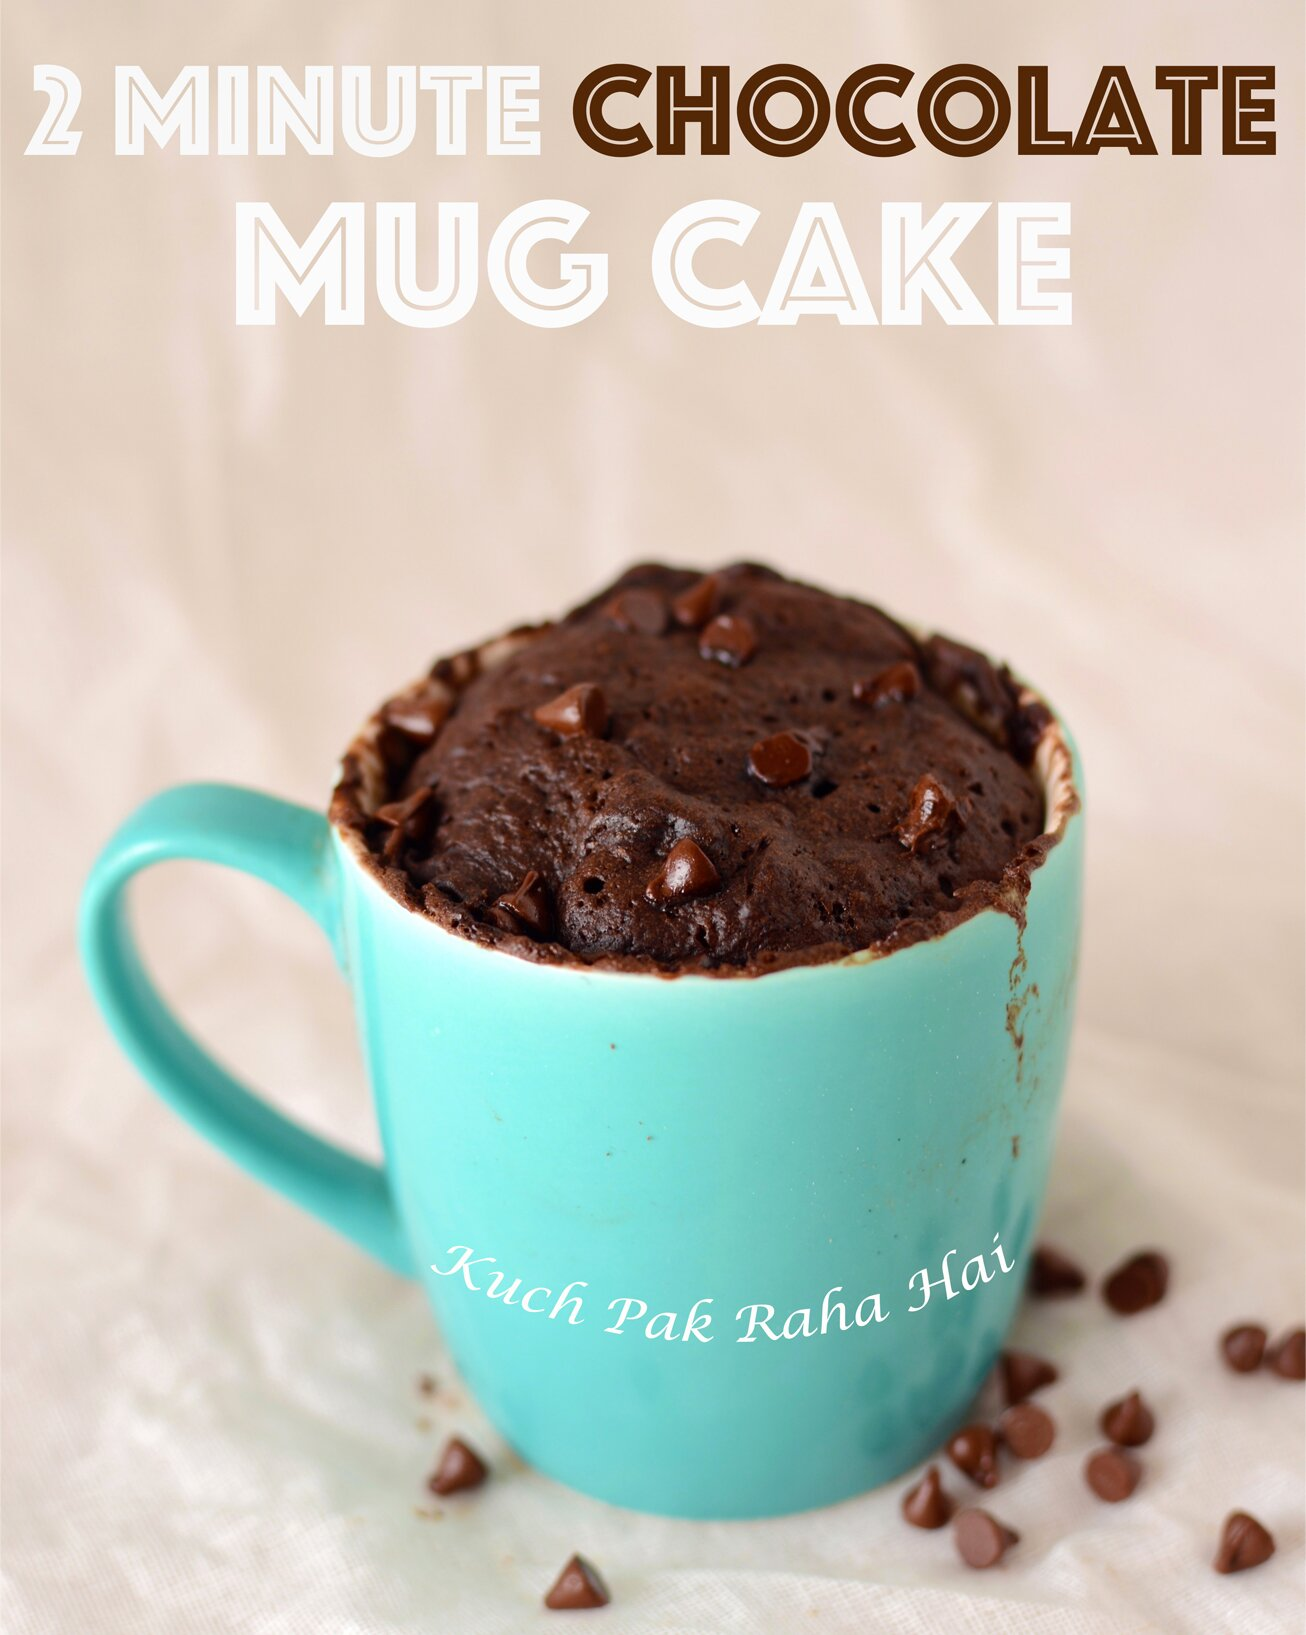 Eggless Chocolate Mug Cake in microwave in just 2 minutes